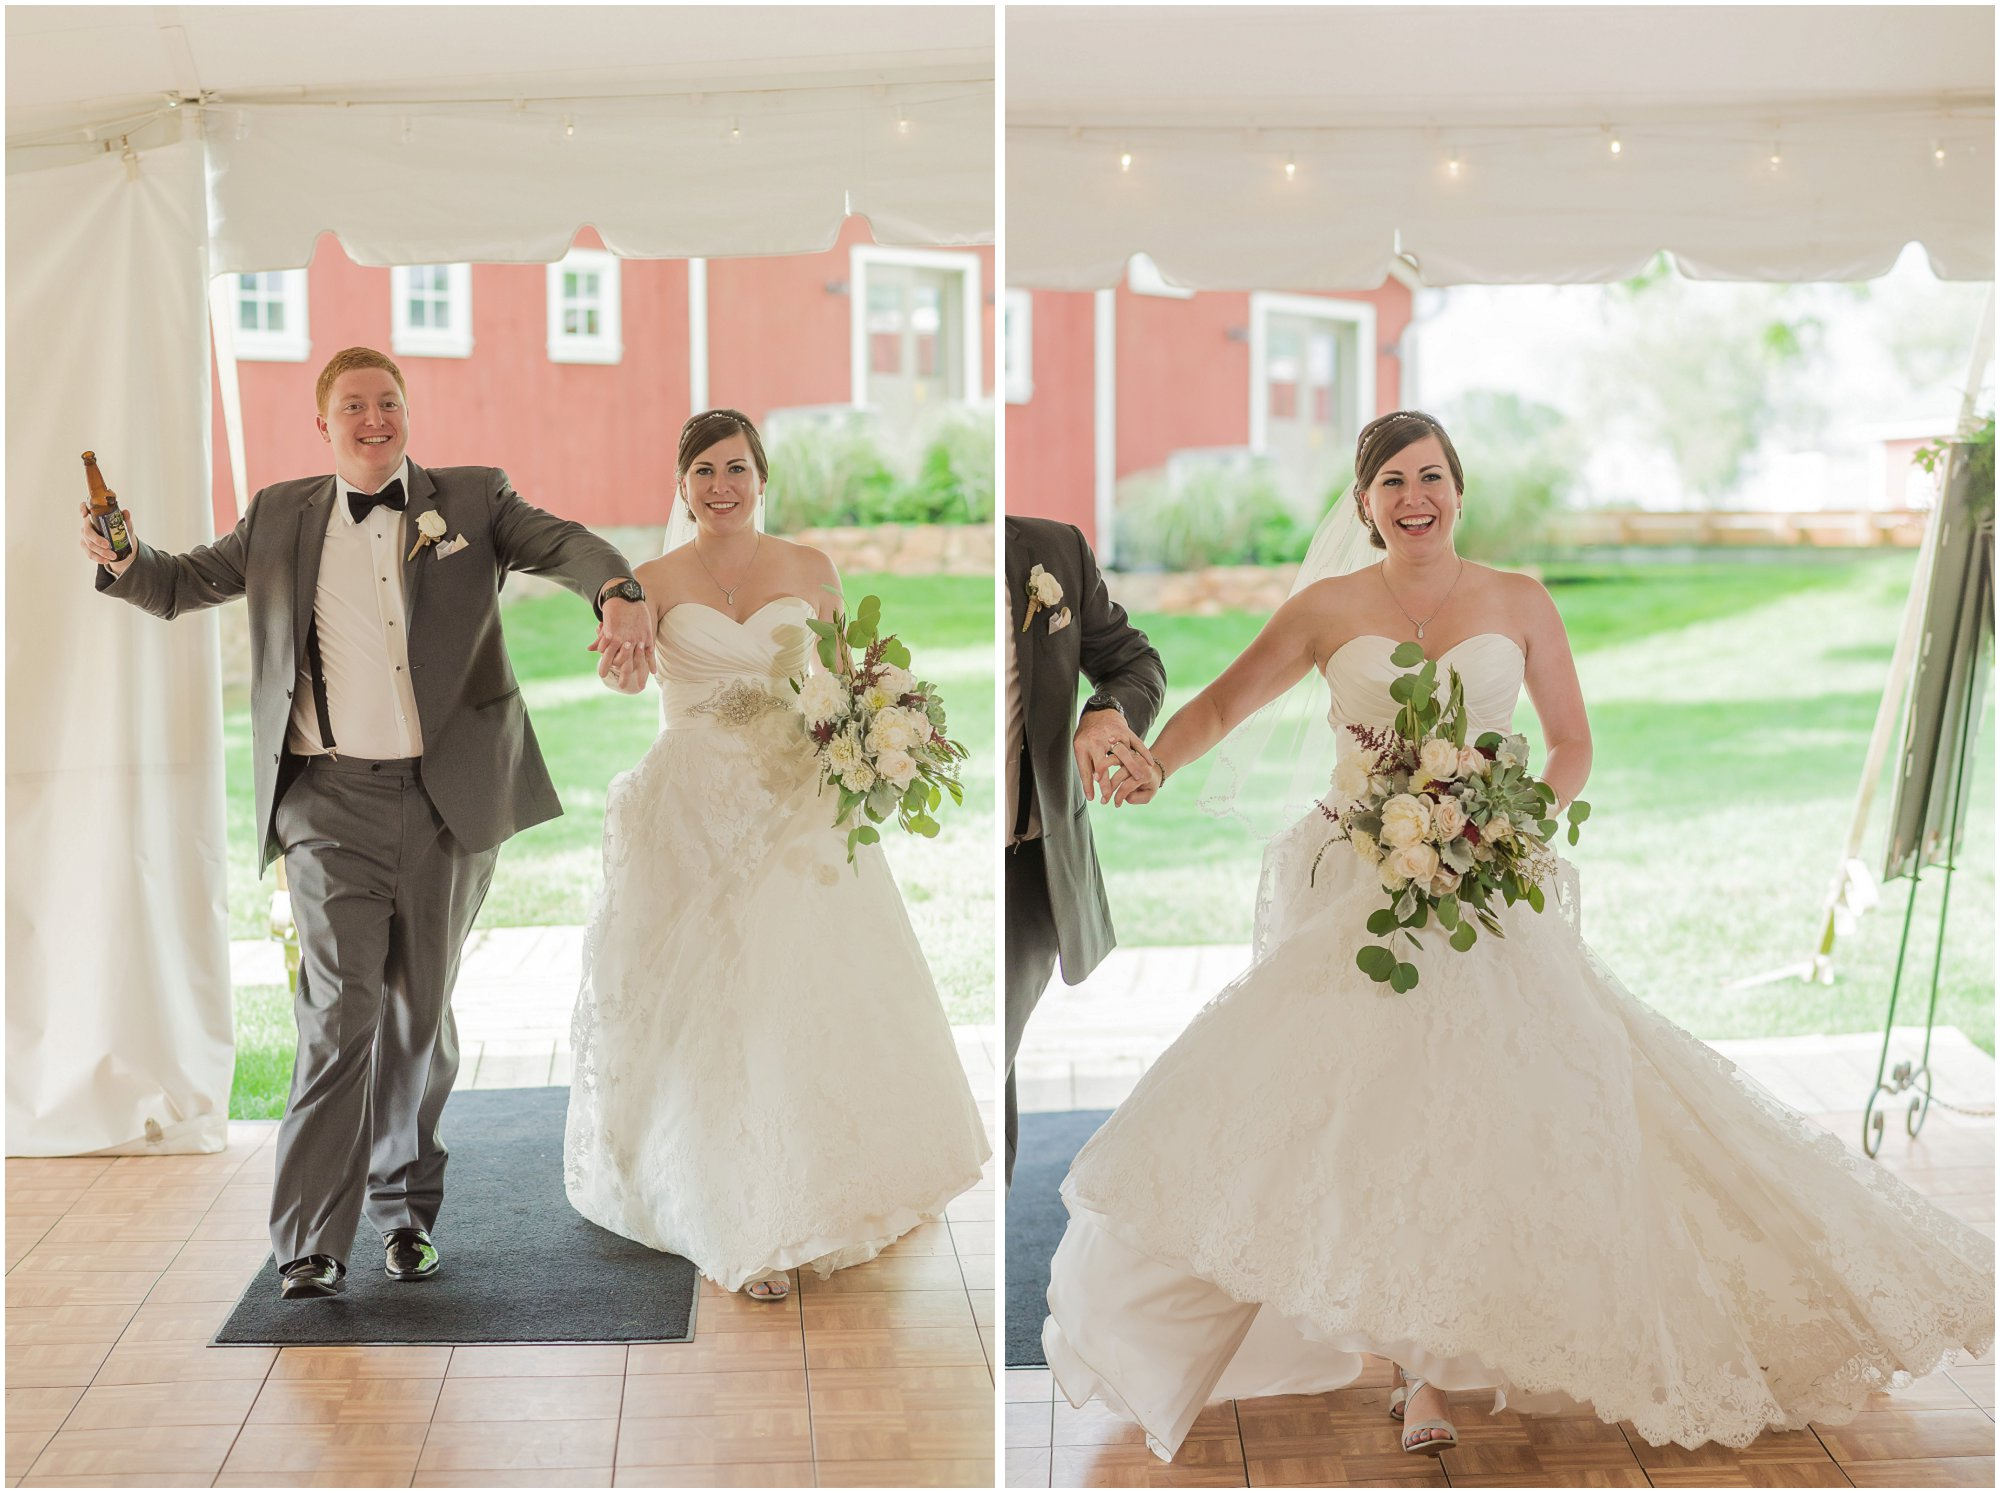 cornman-farms-wedding-michigan-barn-wedding_0978.jpg